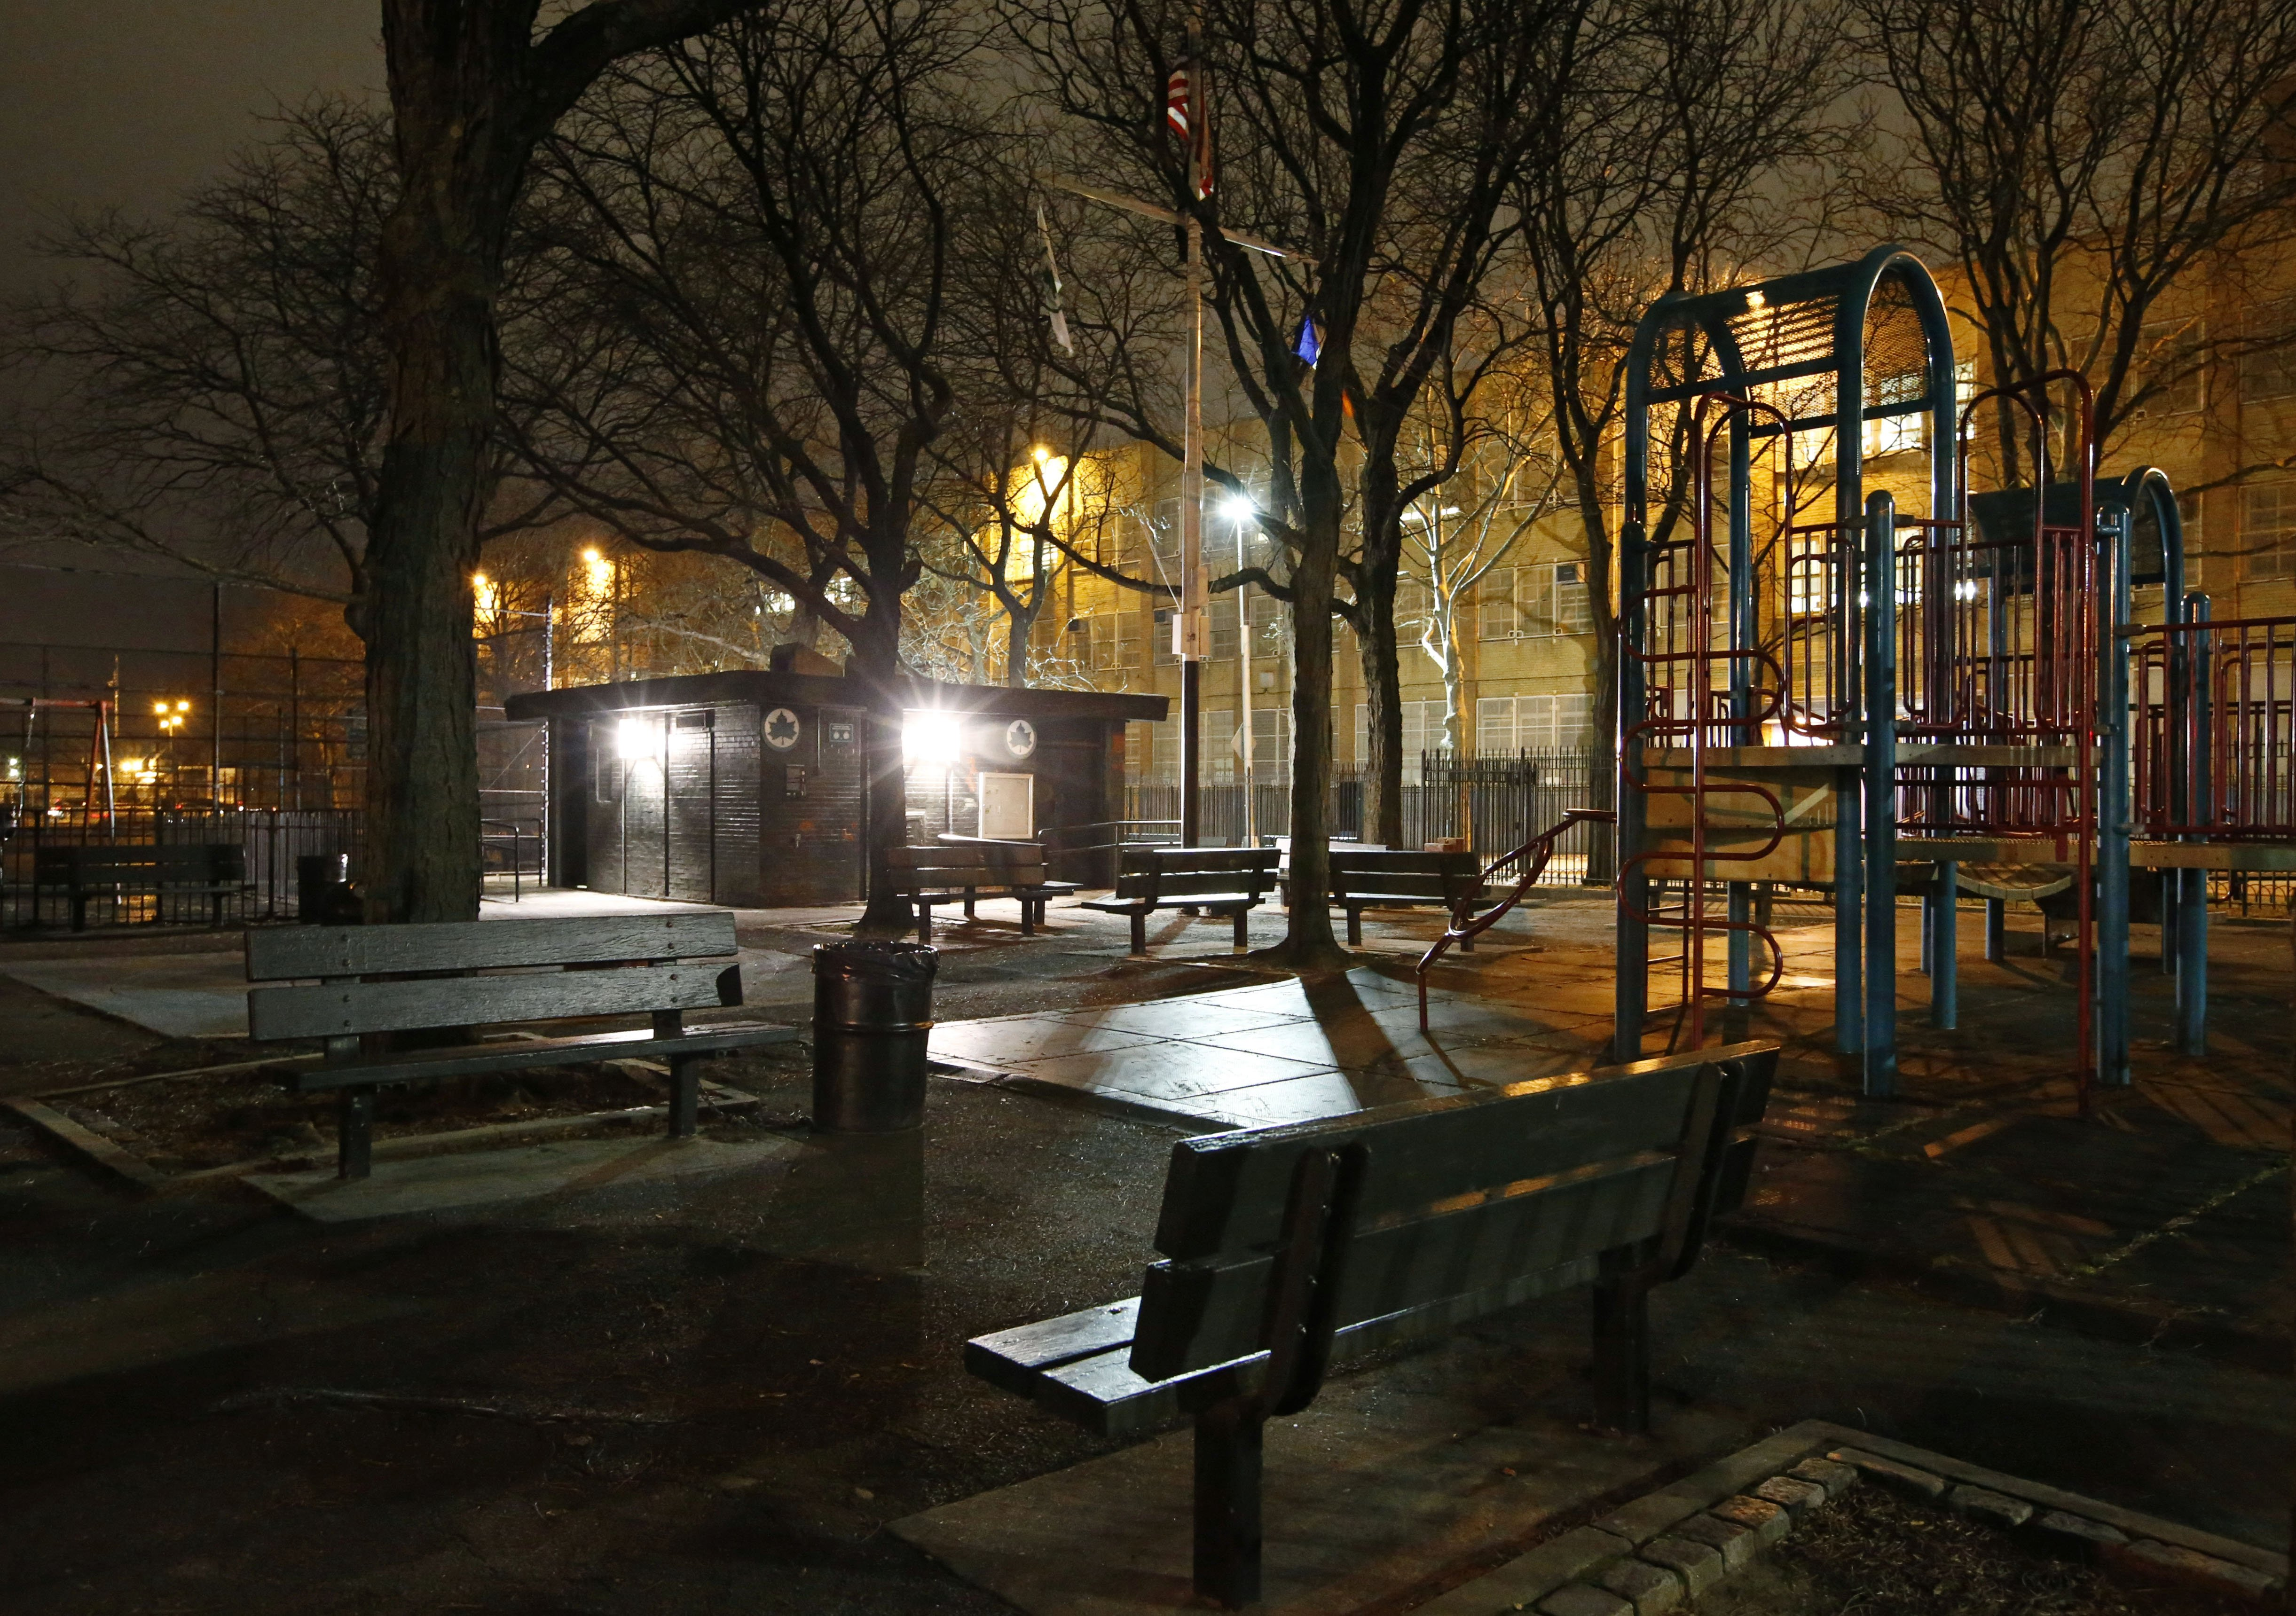 New floodlight-style lighting has been installed at Osborn Playground in the Brooklyn borough of New York, on Jan. 14, 2016.